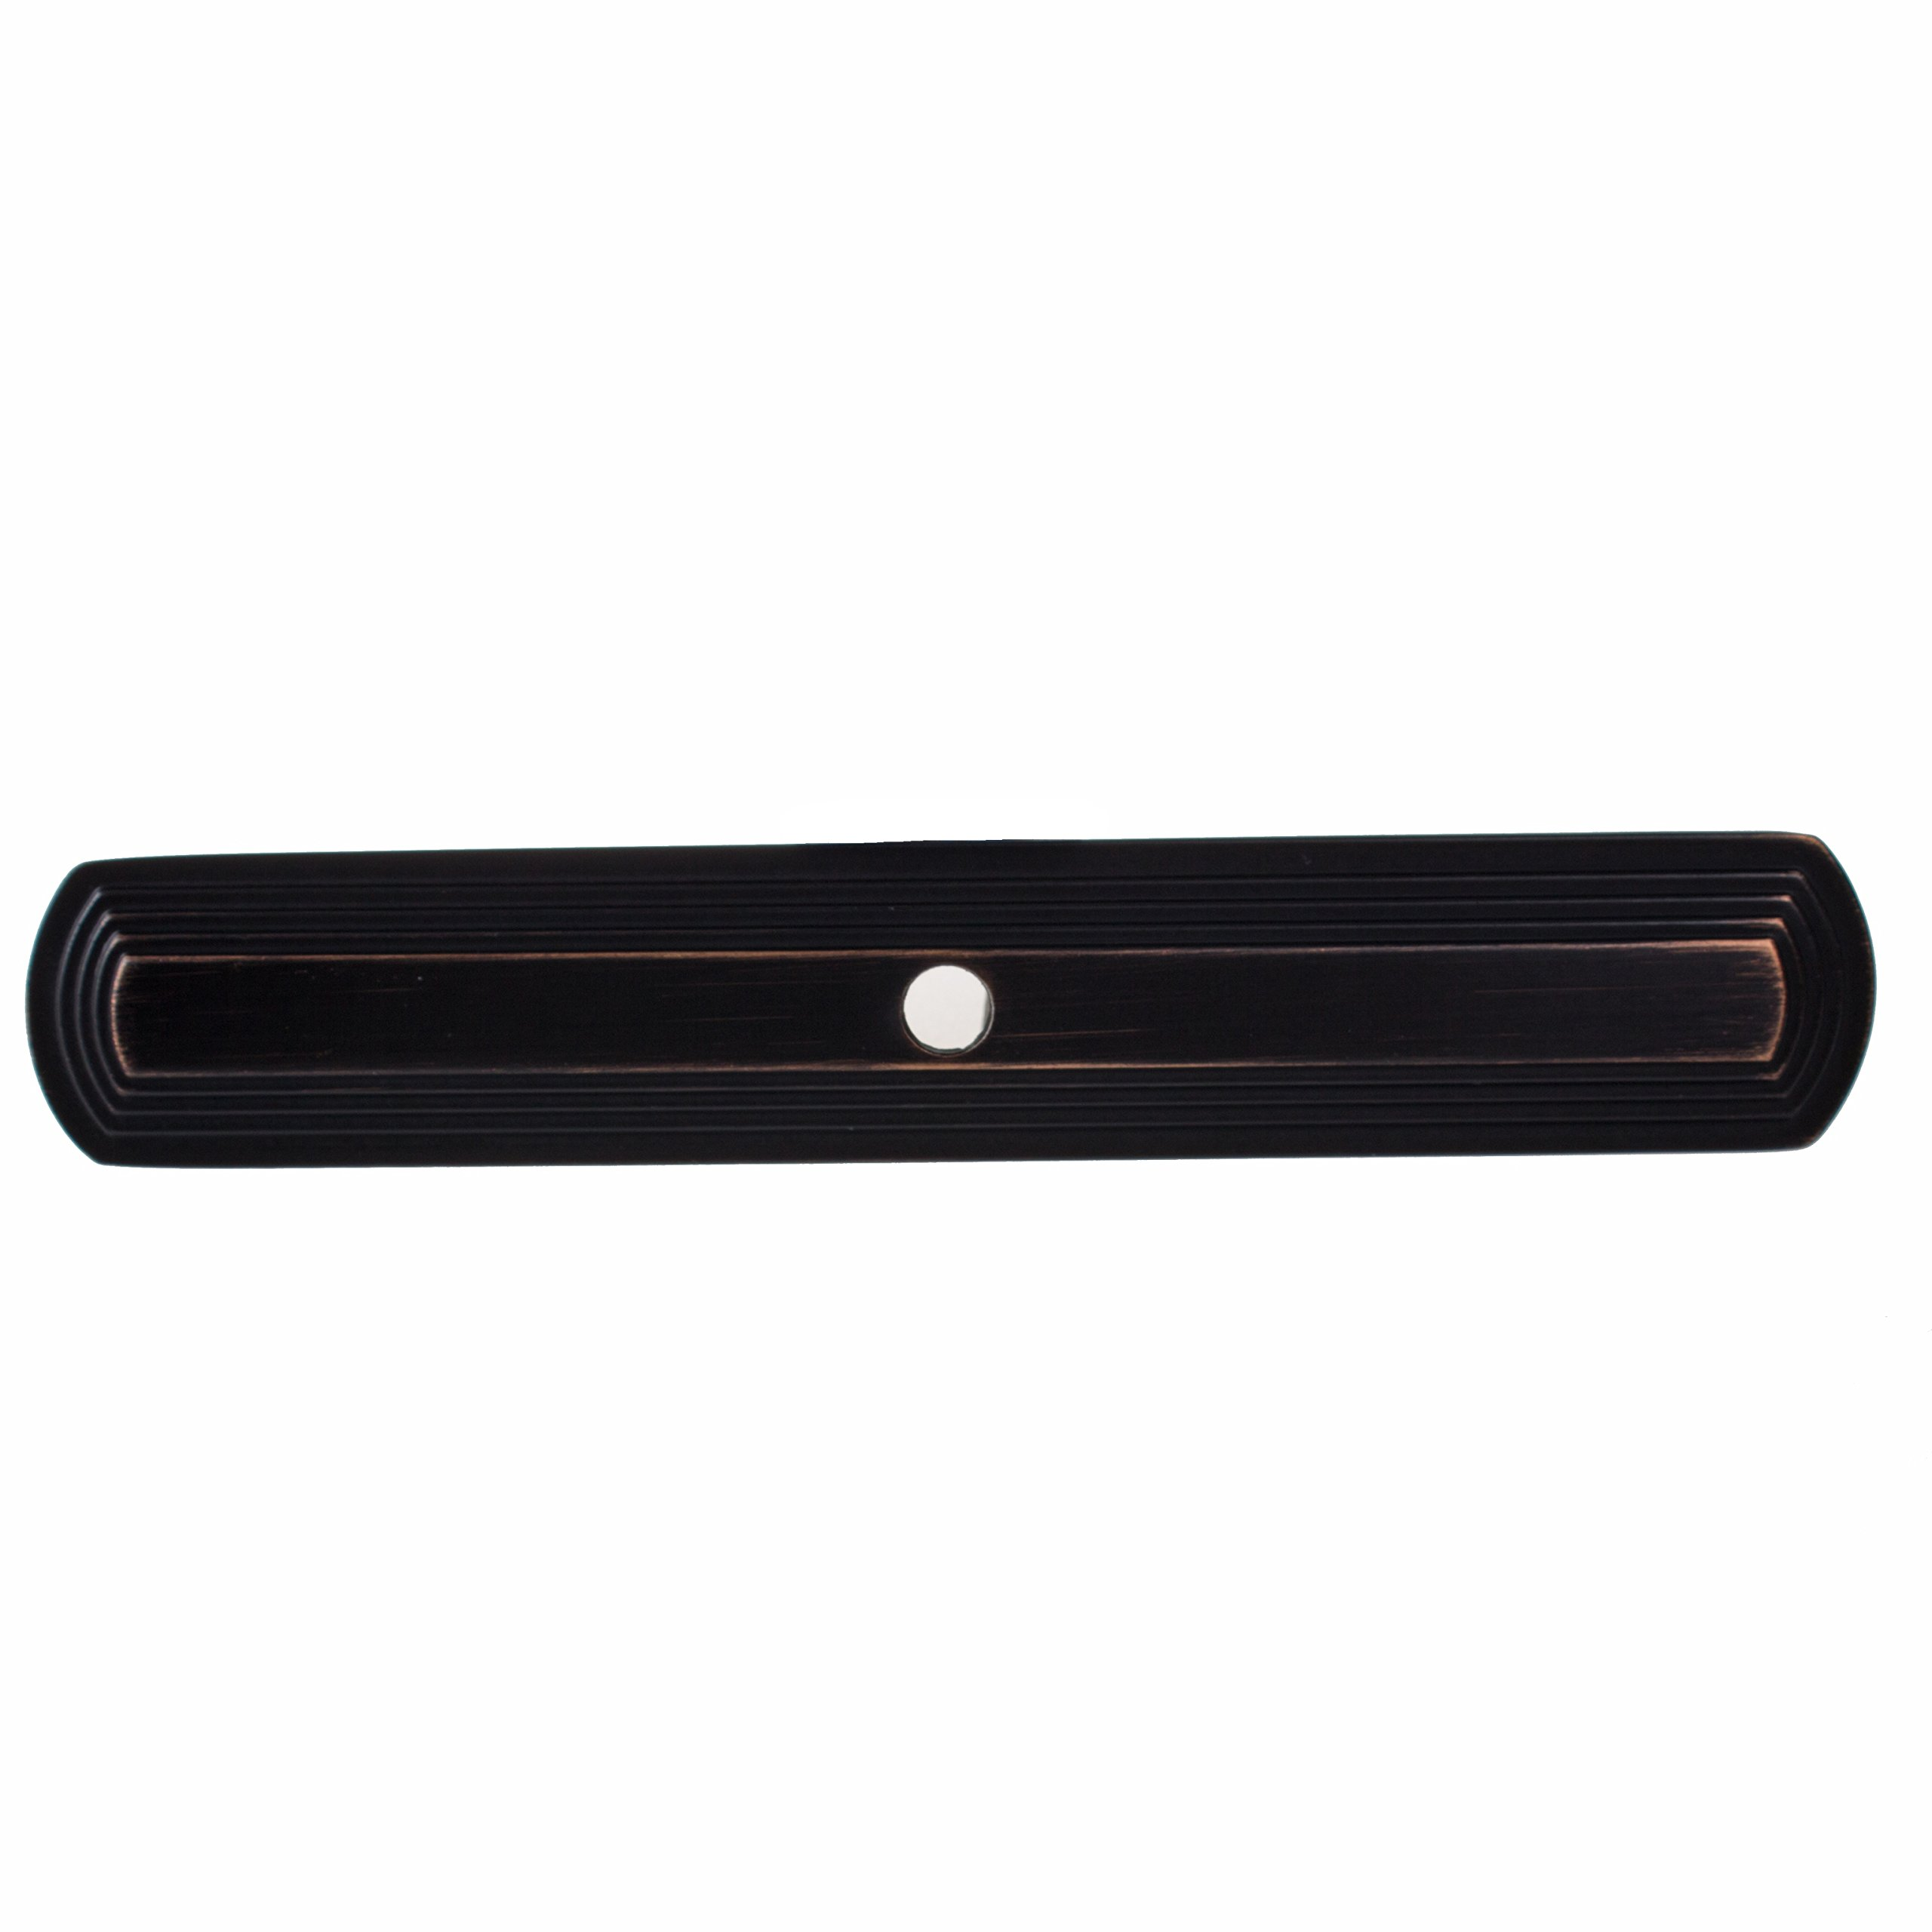 GlideRite Hardware 1079-ORB-10 6 inch Long Narrow Rounded Rectangle Oil Rubbed Bronze Cabinet Back Plate 10 Pack by GlideRite Hardware